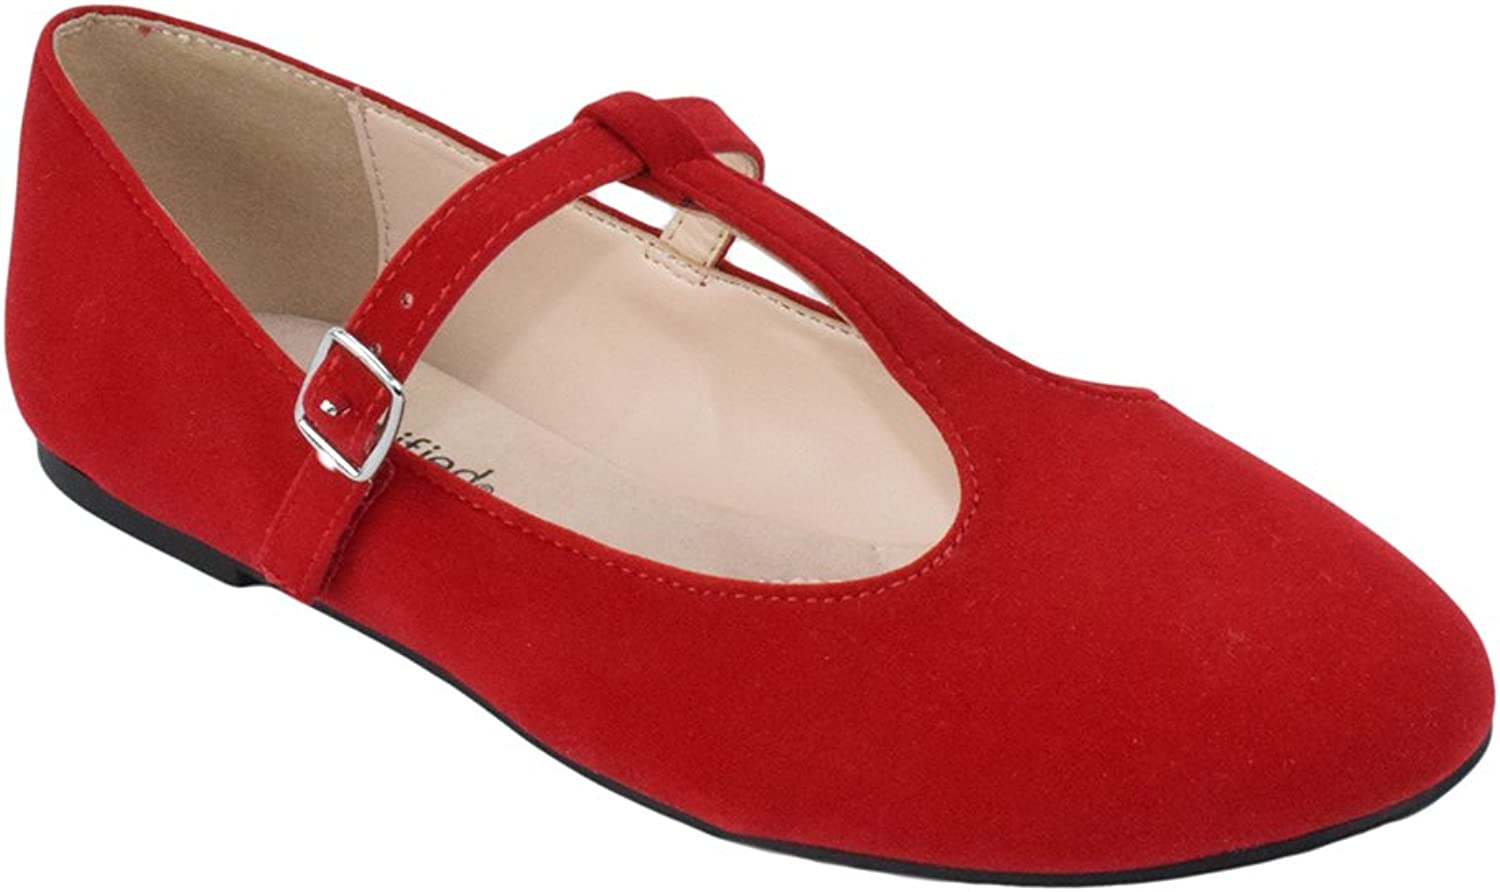 City Classified Women Ballet Flats Mary Jane shoes Ankle T-Strap Duffel-H